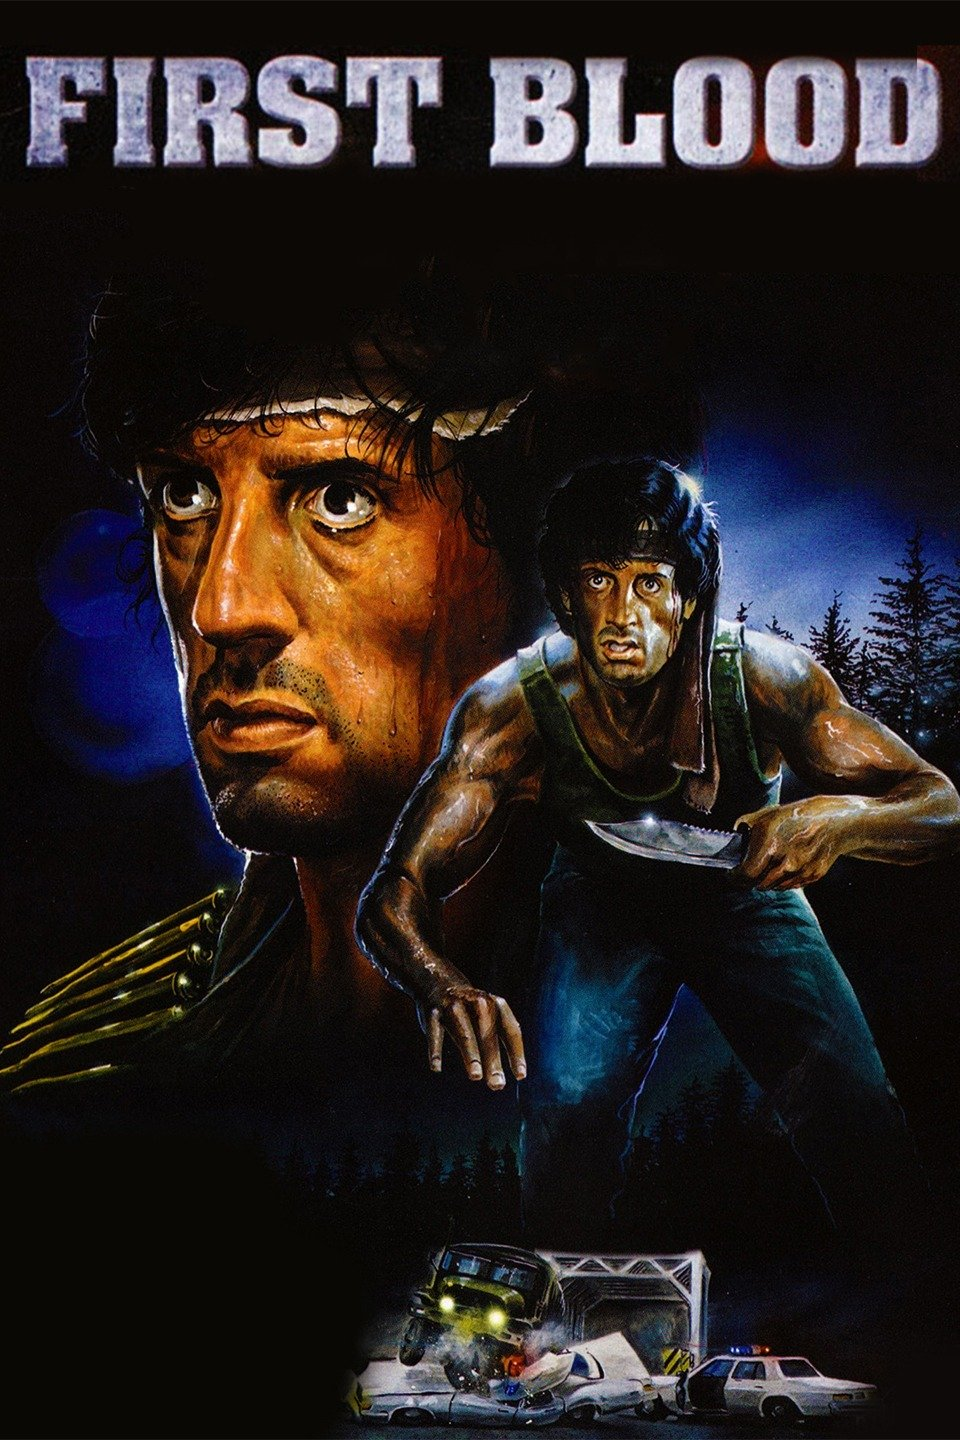 First Blood movie poster feature Stallone